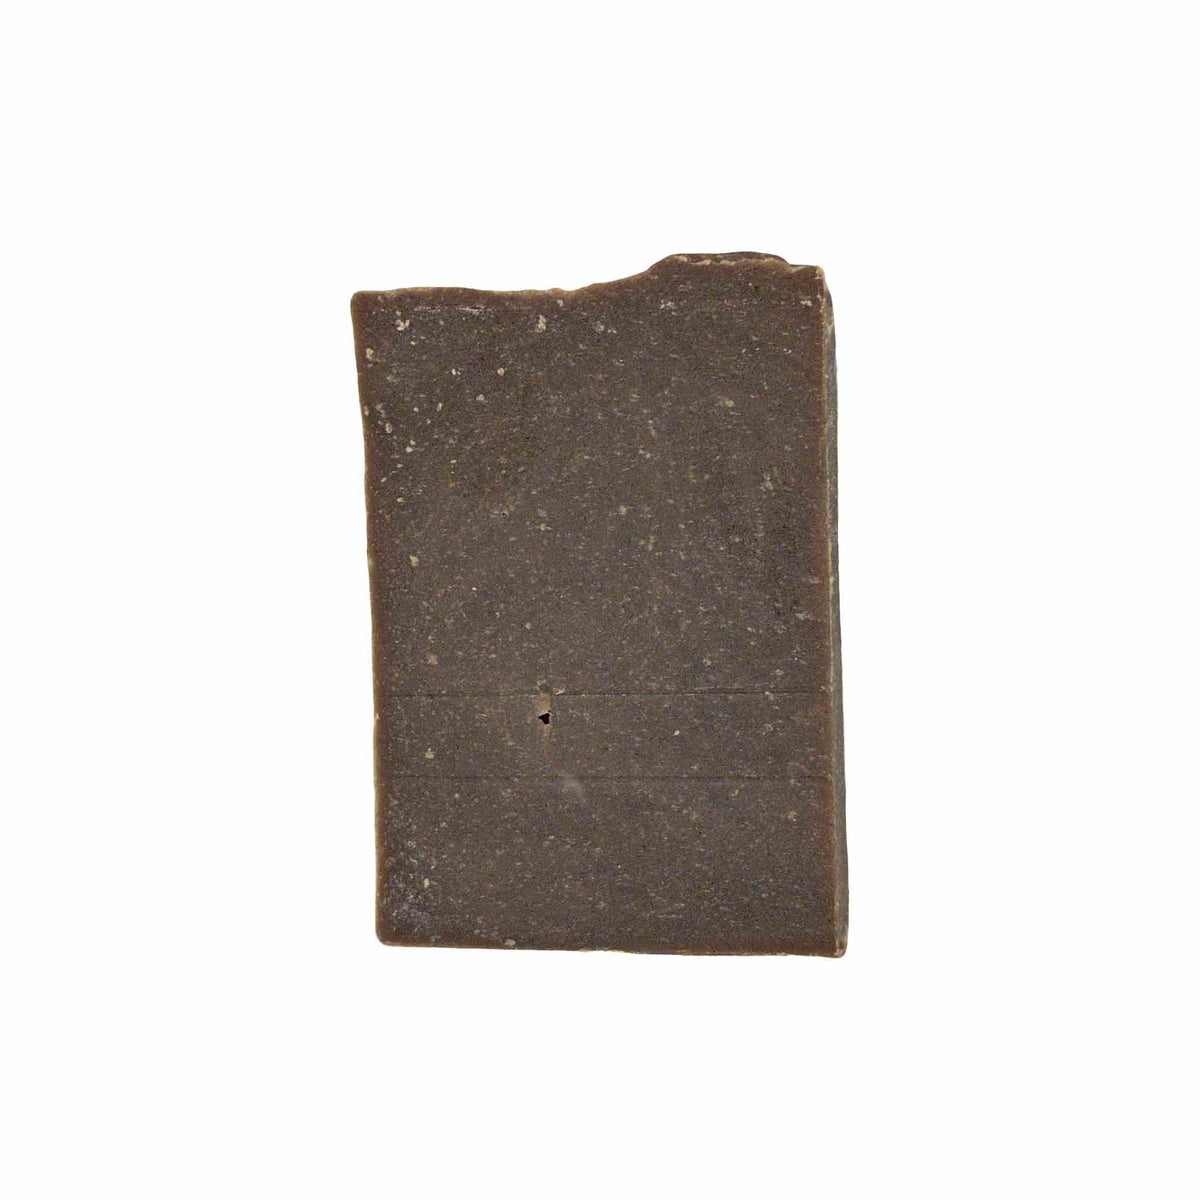 Cinnamon (Tablet Plain)